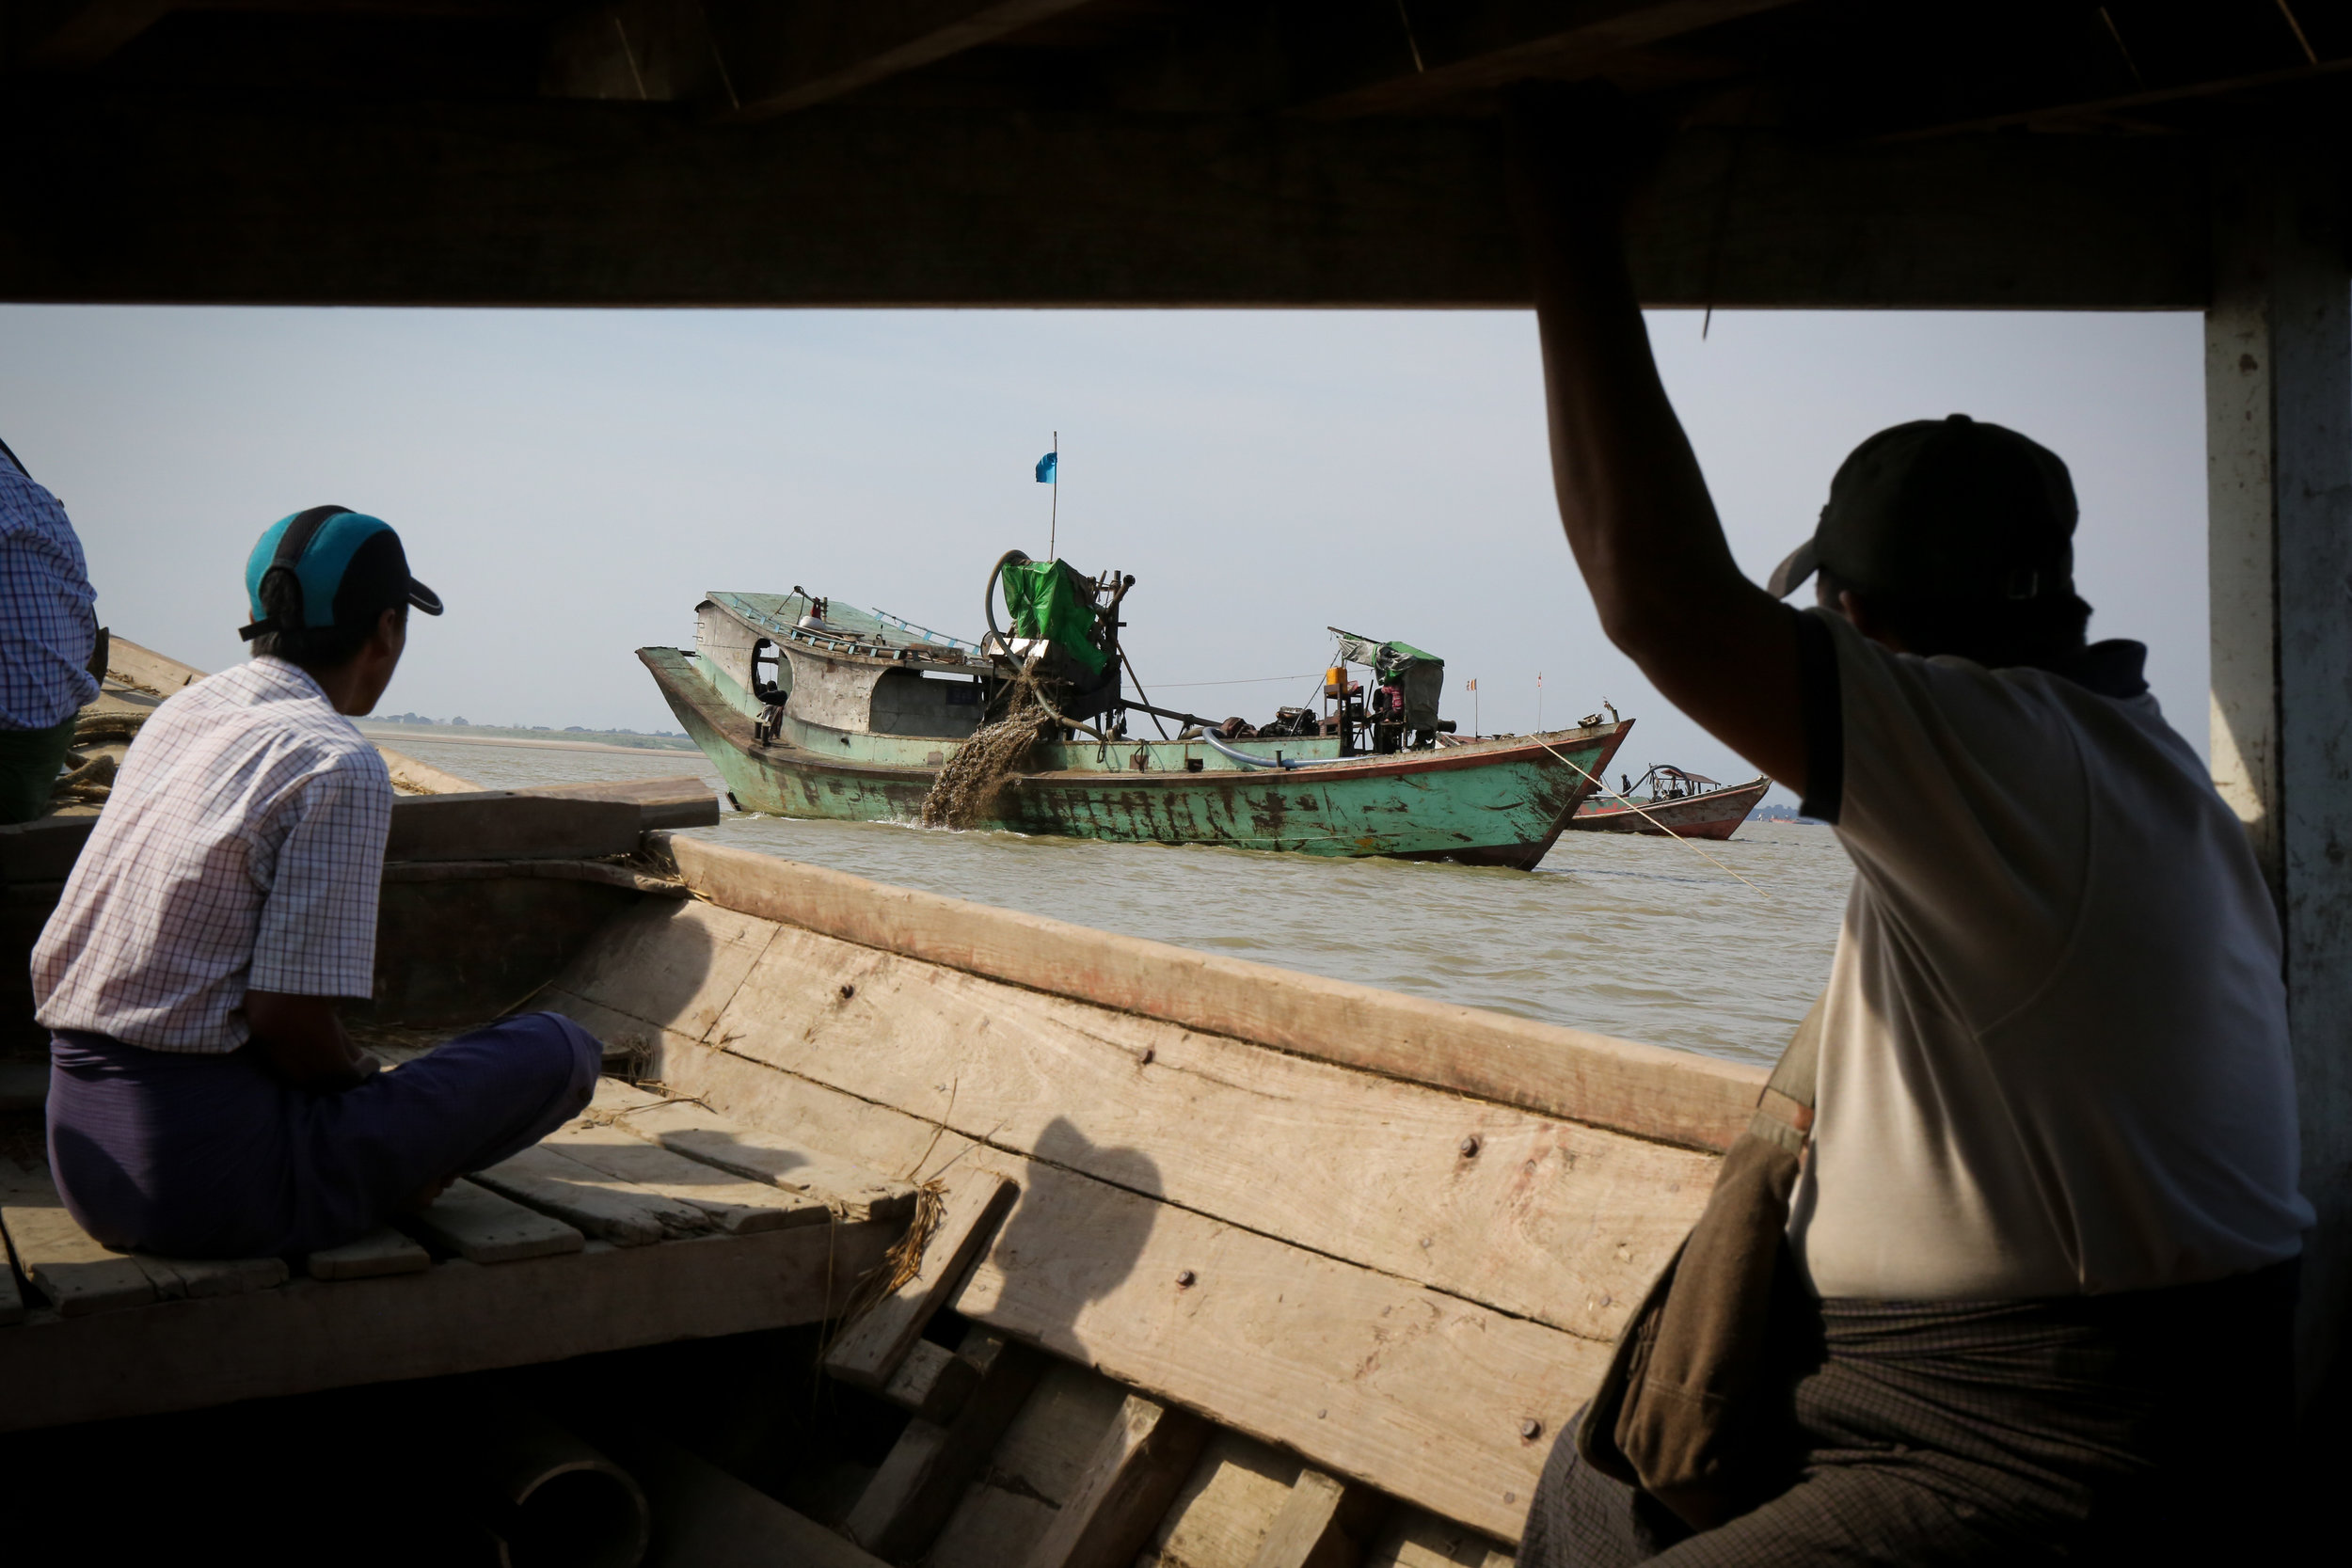 Fishermen and villagers watch a sand mining boat off the coast of their village.